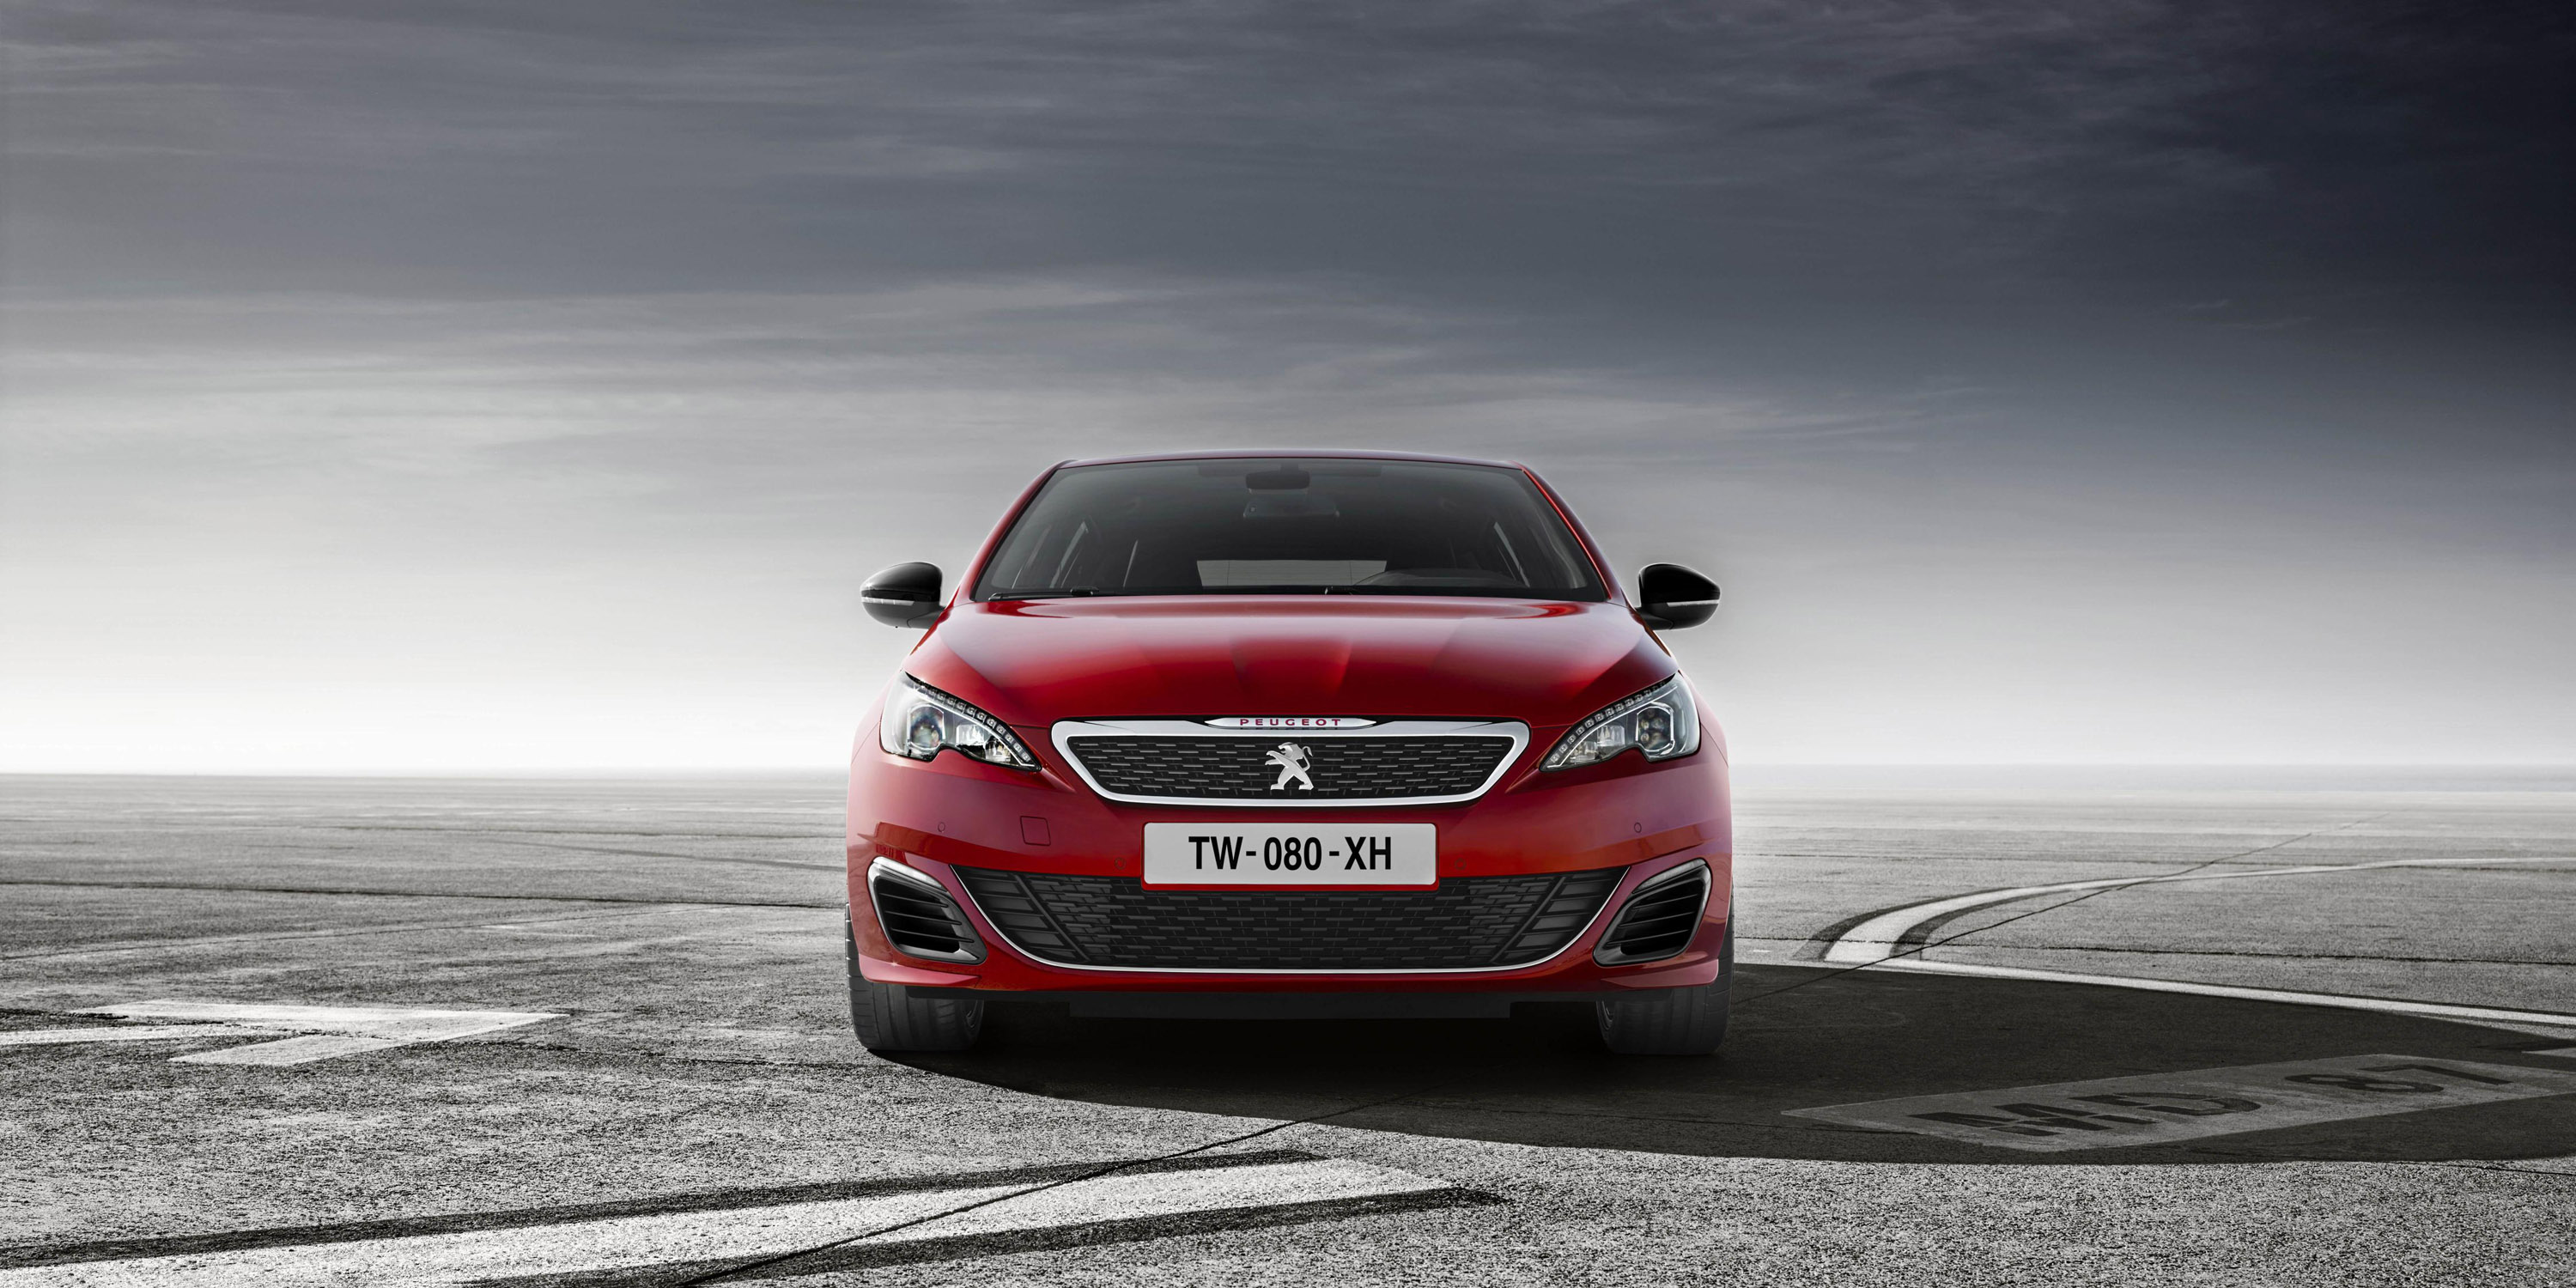 2016 peugeot 308 gti unleashed to debut at goodwood detailed review. Black Bedroom Furniture Sets. Home Design Ideas